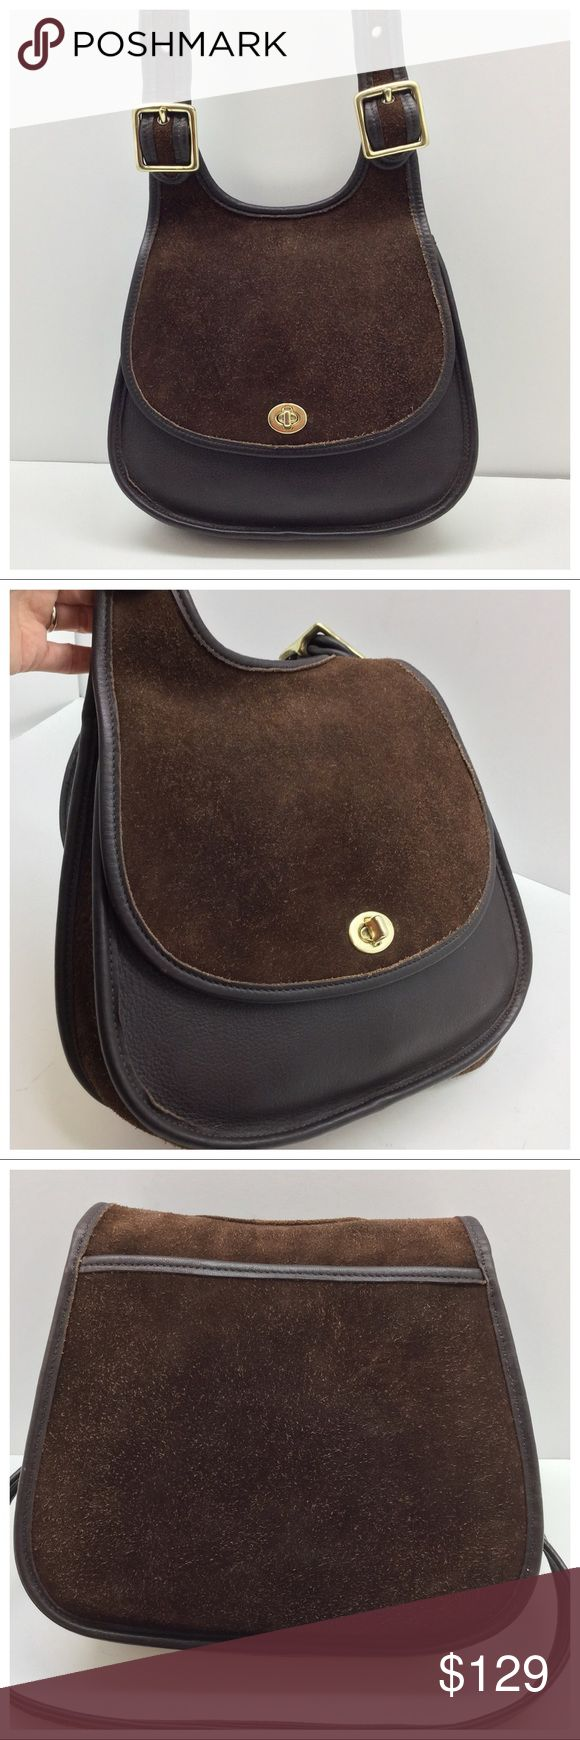 {Coach} Vintage Berkeley Saddle Bag 🚫Trades🚫Holds🚫Price talk in comments Authentic Coach Berkeley Saddle Bag  - Mahogany suede & pebbled leather  - Brass hardware, turnlock flap closure  - Suede/leather interior w/ zip pocket  - Back slip pocket  - Made in USA in 1996  - Pre-loved so not pristine like-new but good vintage condition, there are no bare spots on suede, hardware has some scratches & tarnish Coach Bags Crossbody Bags